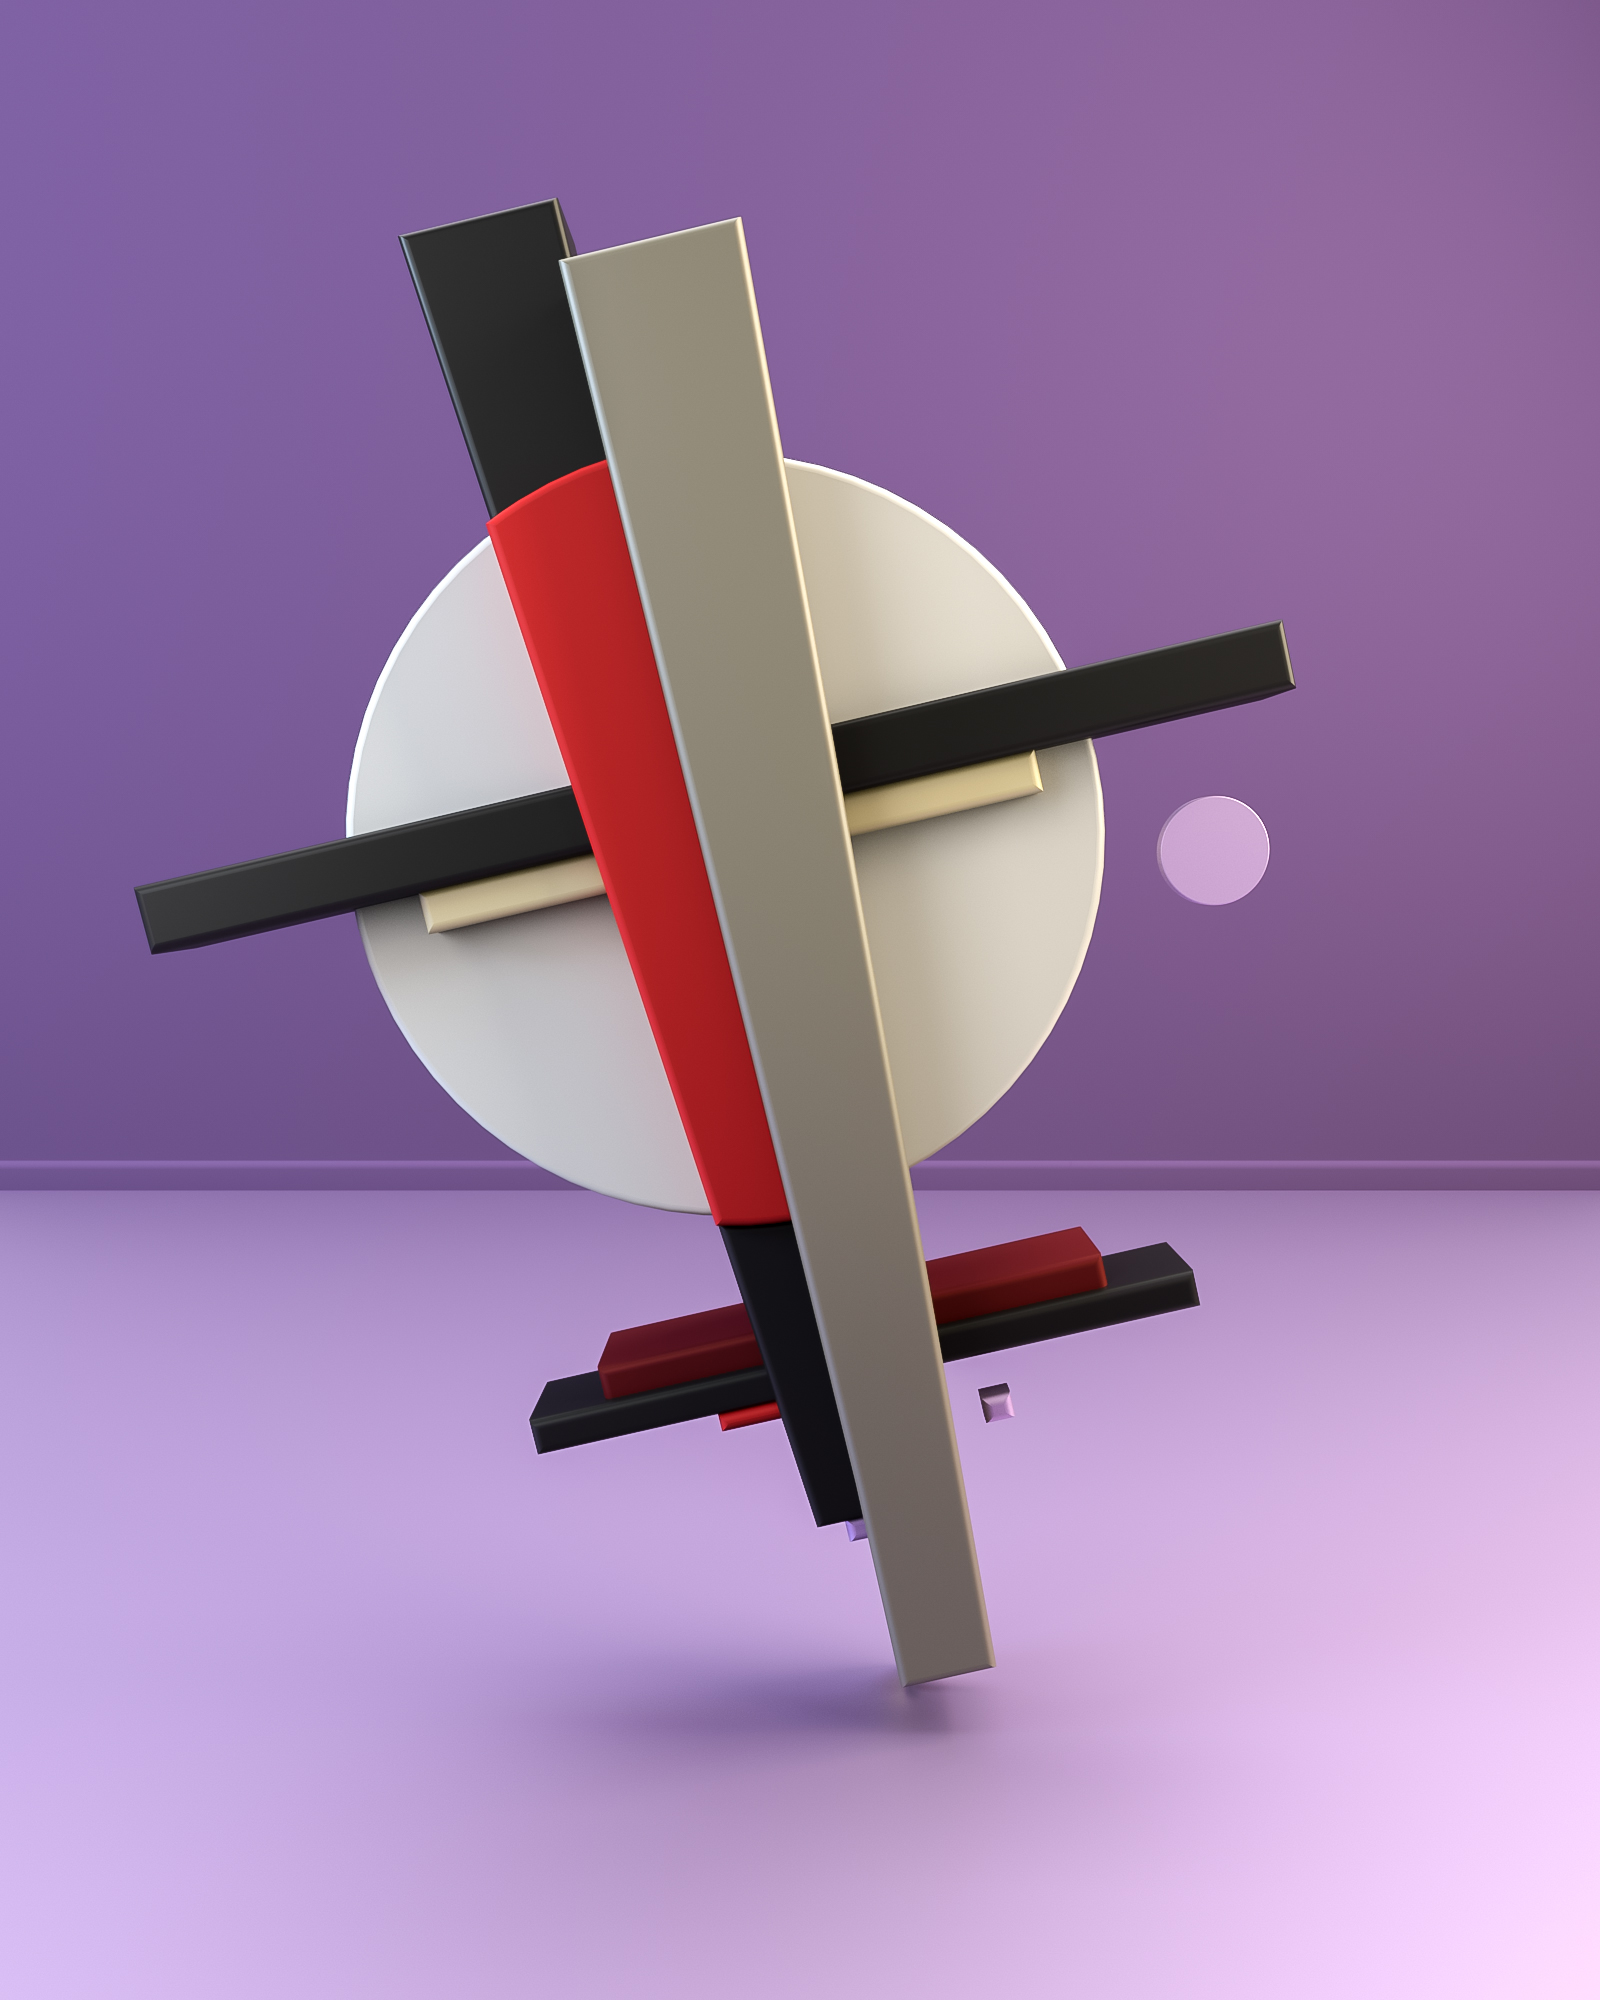 Rendering Digital Art Suprematism Constructivism - 3d rendered experimental artworks